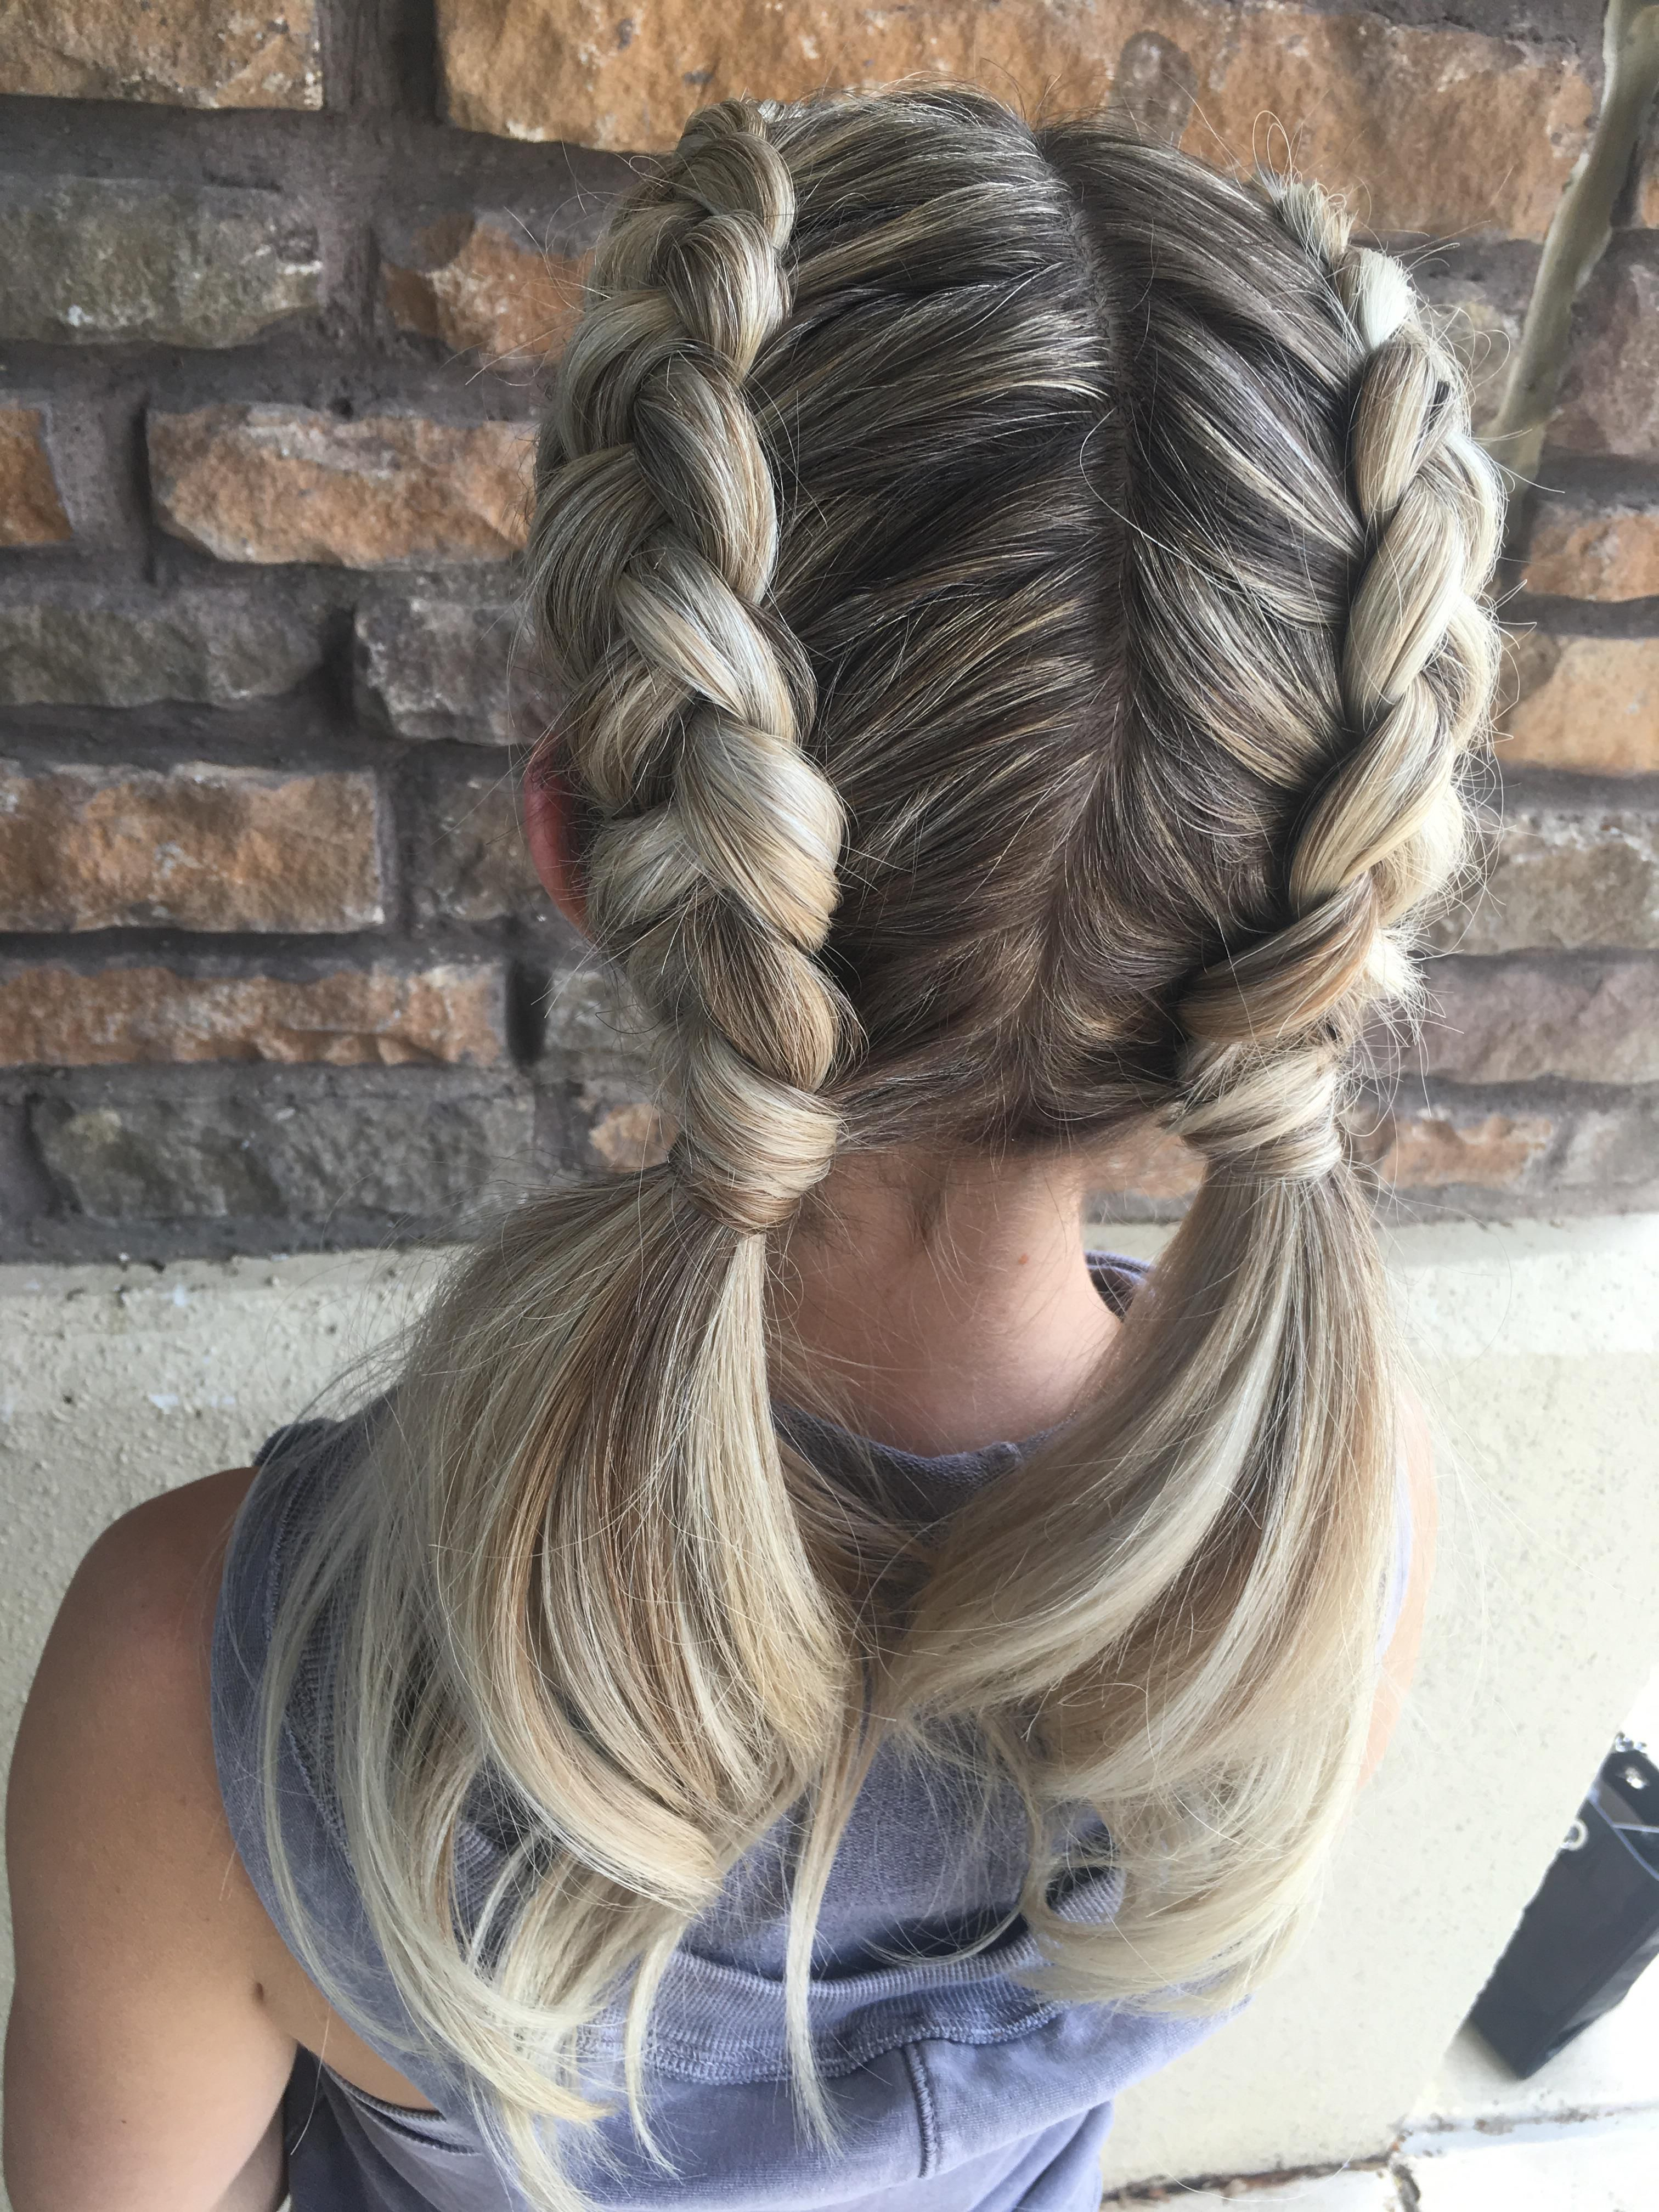 Braids Buns And Ponys 35 Two Dutch Braids Into Low Pig Tails 3 Hair Styles Competition Hair Dutch Hair